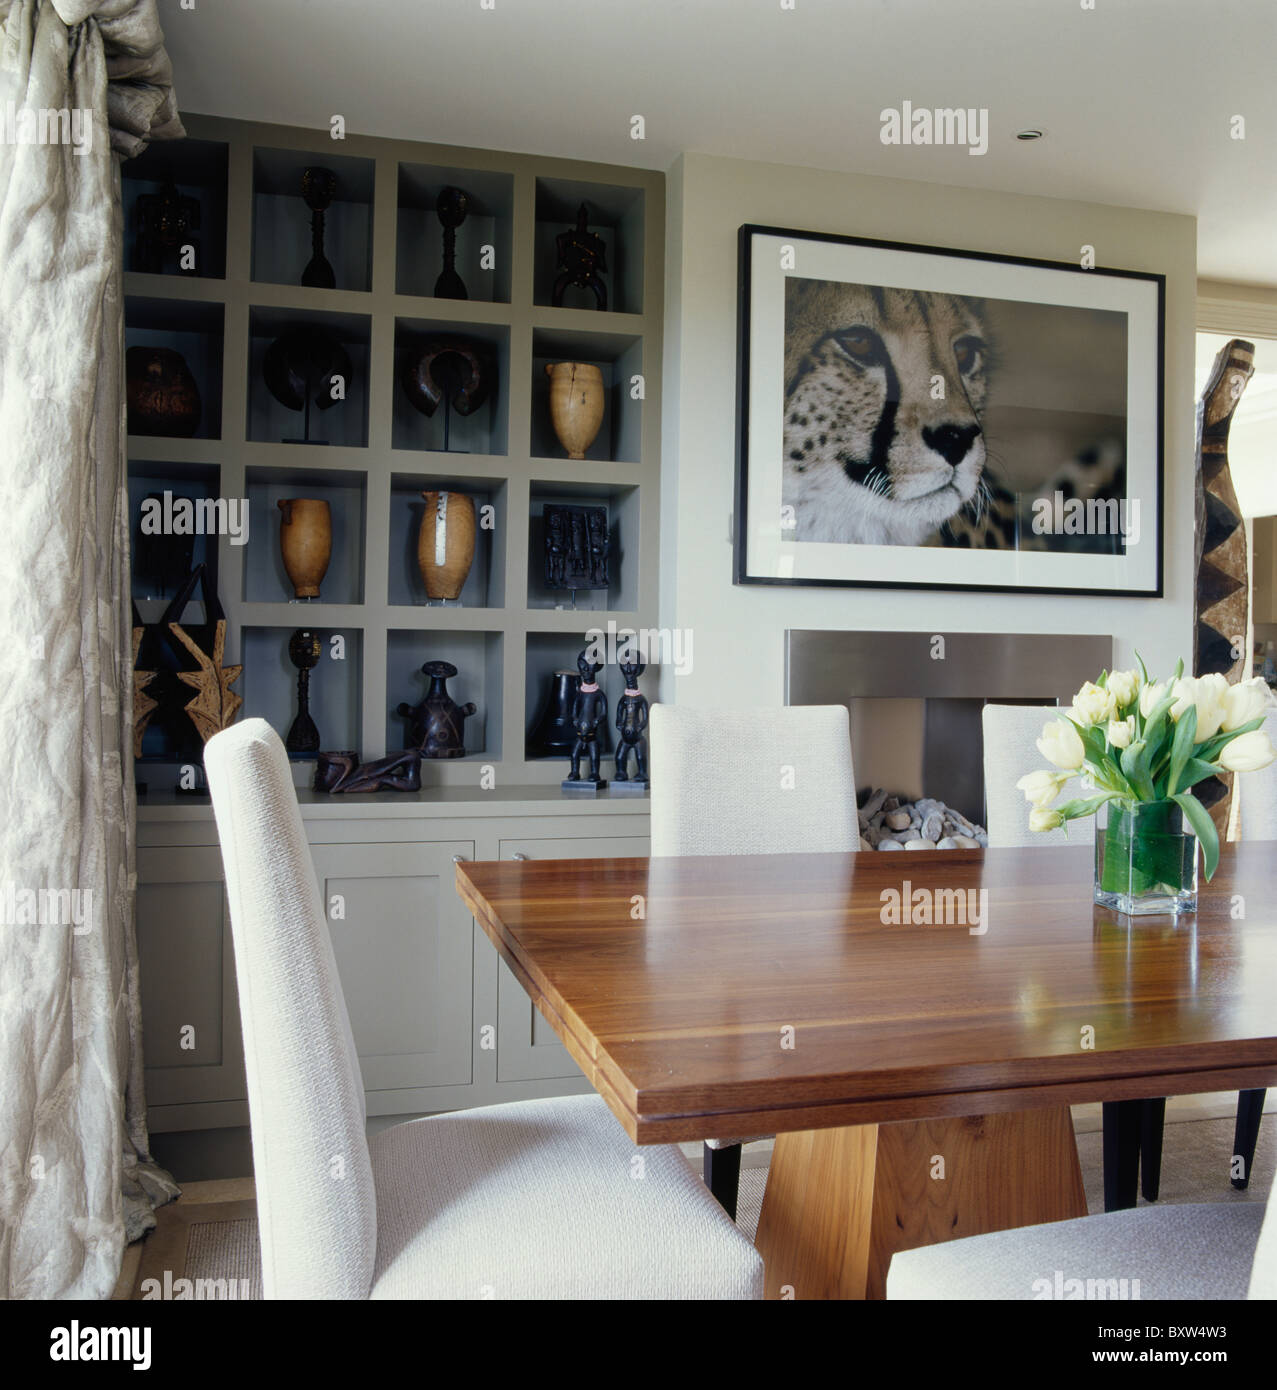 Large Picture Above Fireplace In Cream Dining Room With Cube Alcove  Shelving And Cream Chairs At Plain Wood Table